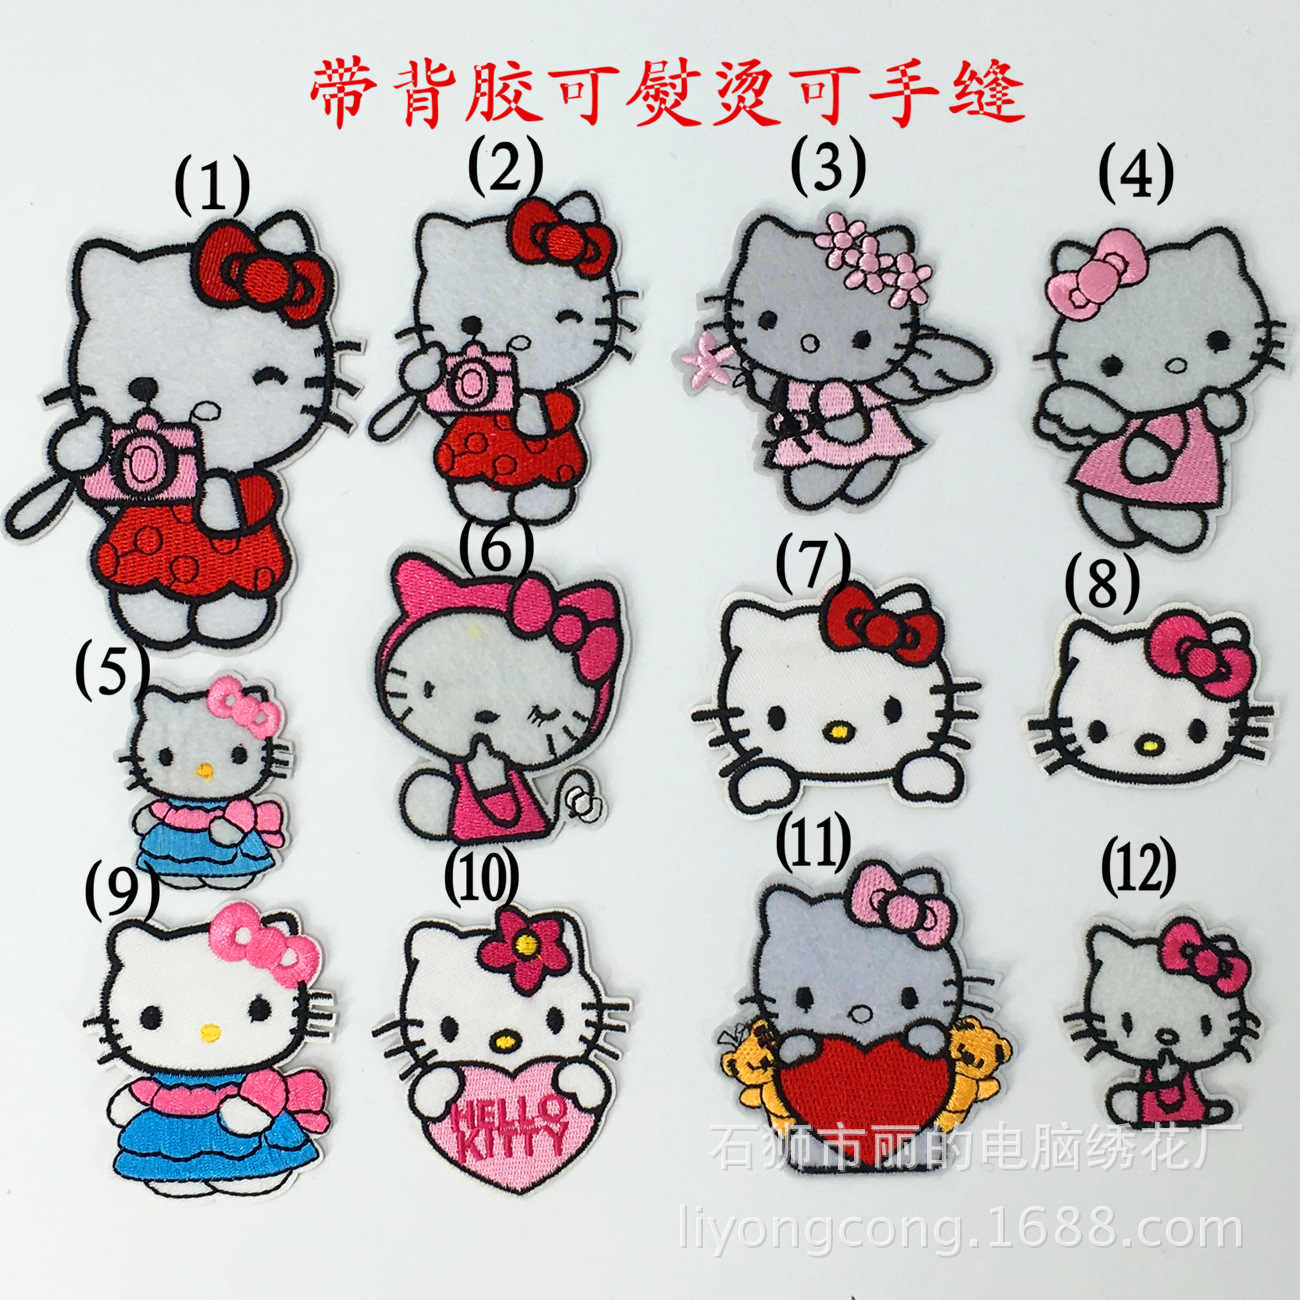 Various kitty Cute cat Love angel Patch Embroidered Applique Sewing Patch Clothes Stickers Garment Apparel Accessories.